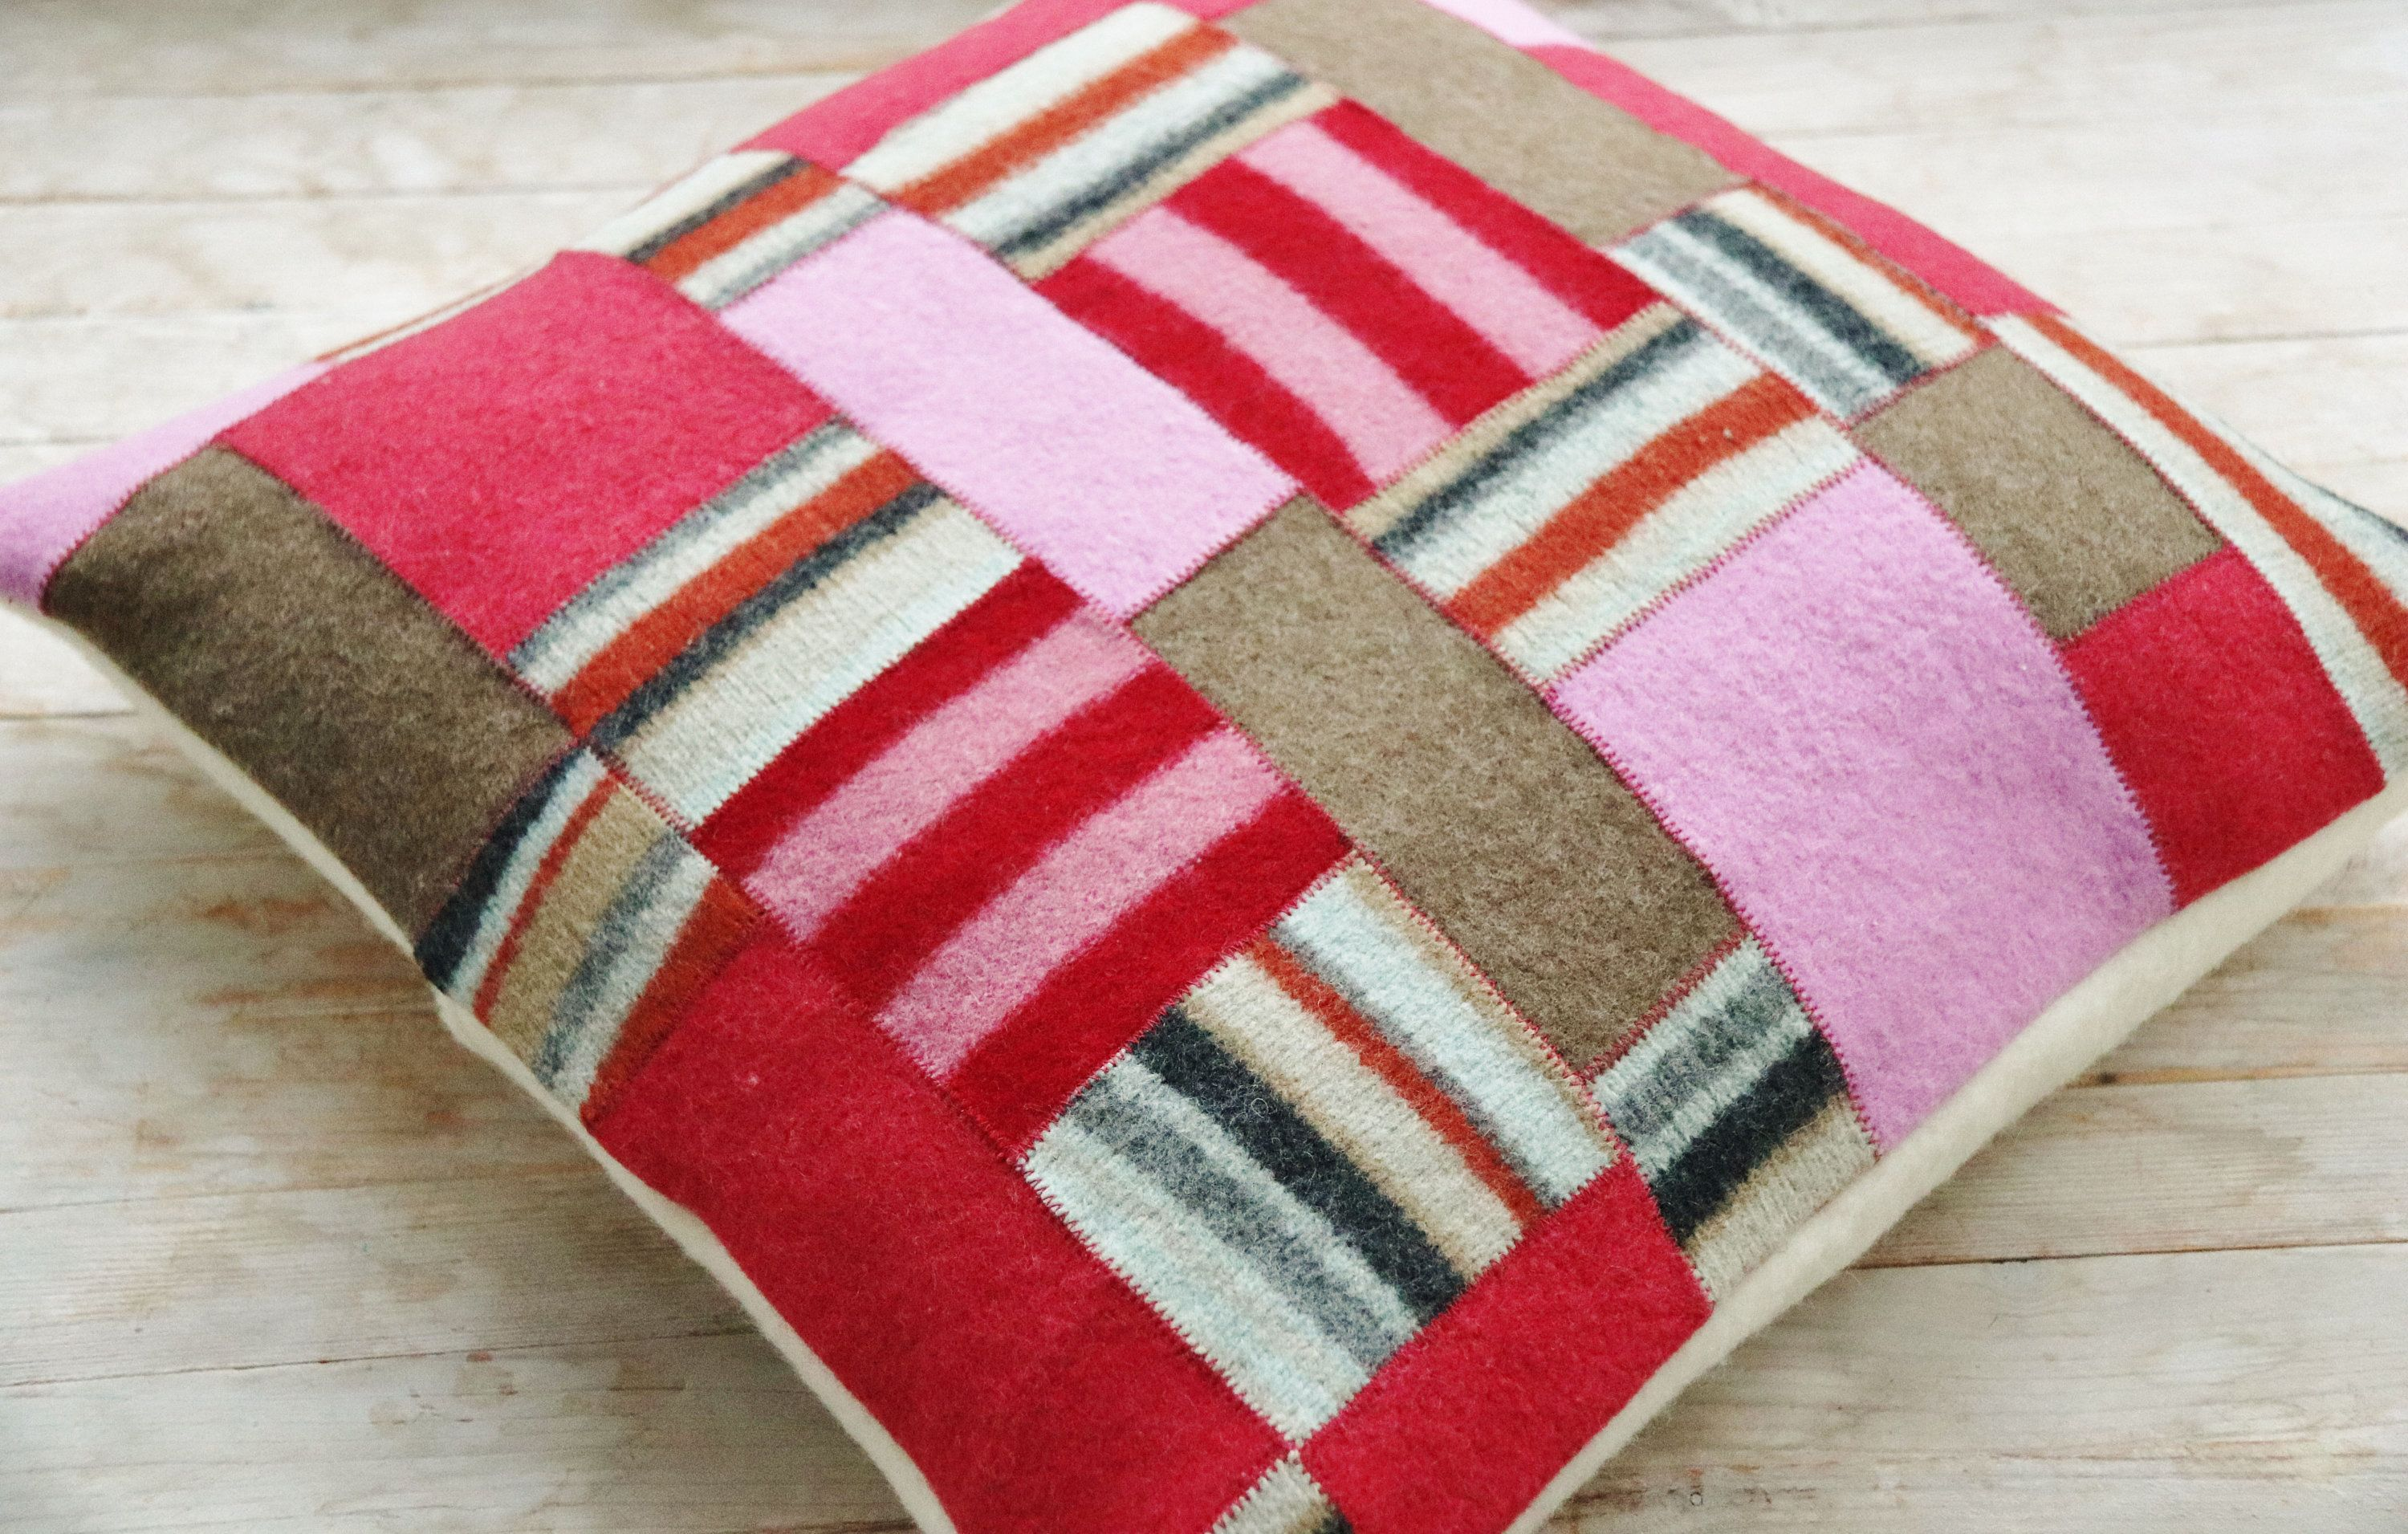 "Pillow case cover felt wool decorative throw cushion cover patchwork pink red brown striped 16"" x 16"" sofa bed armchair housewarming gift"